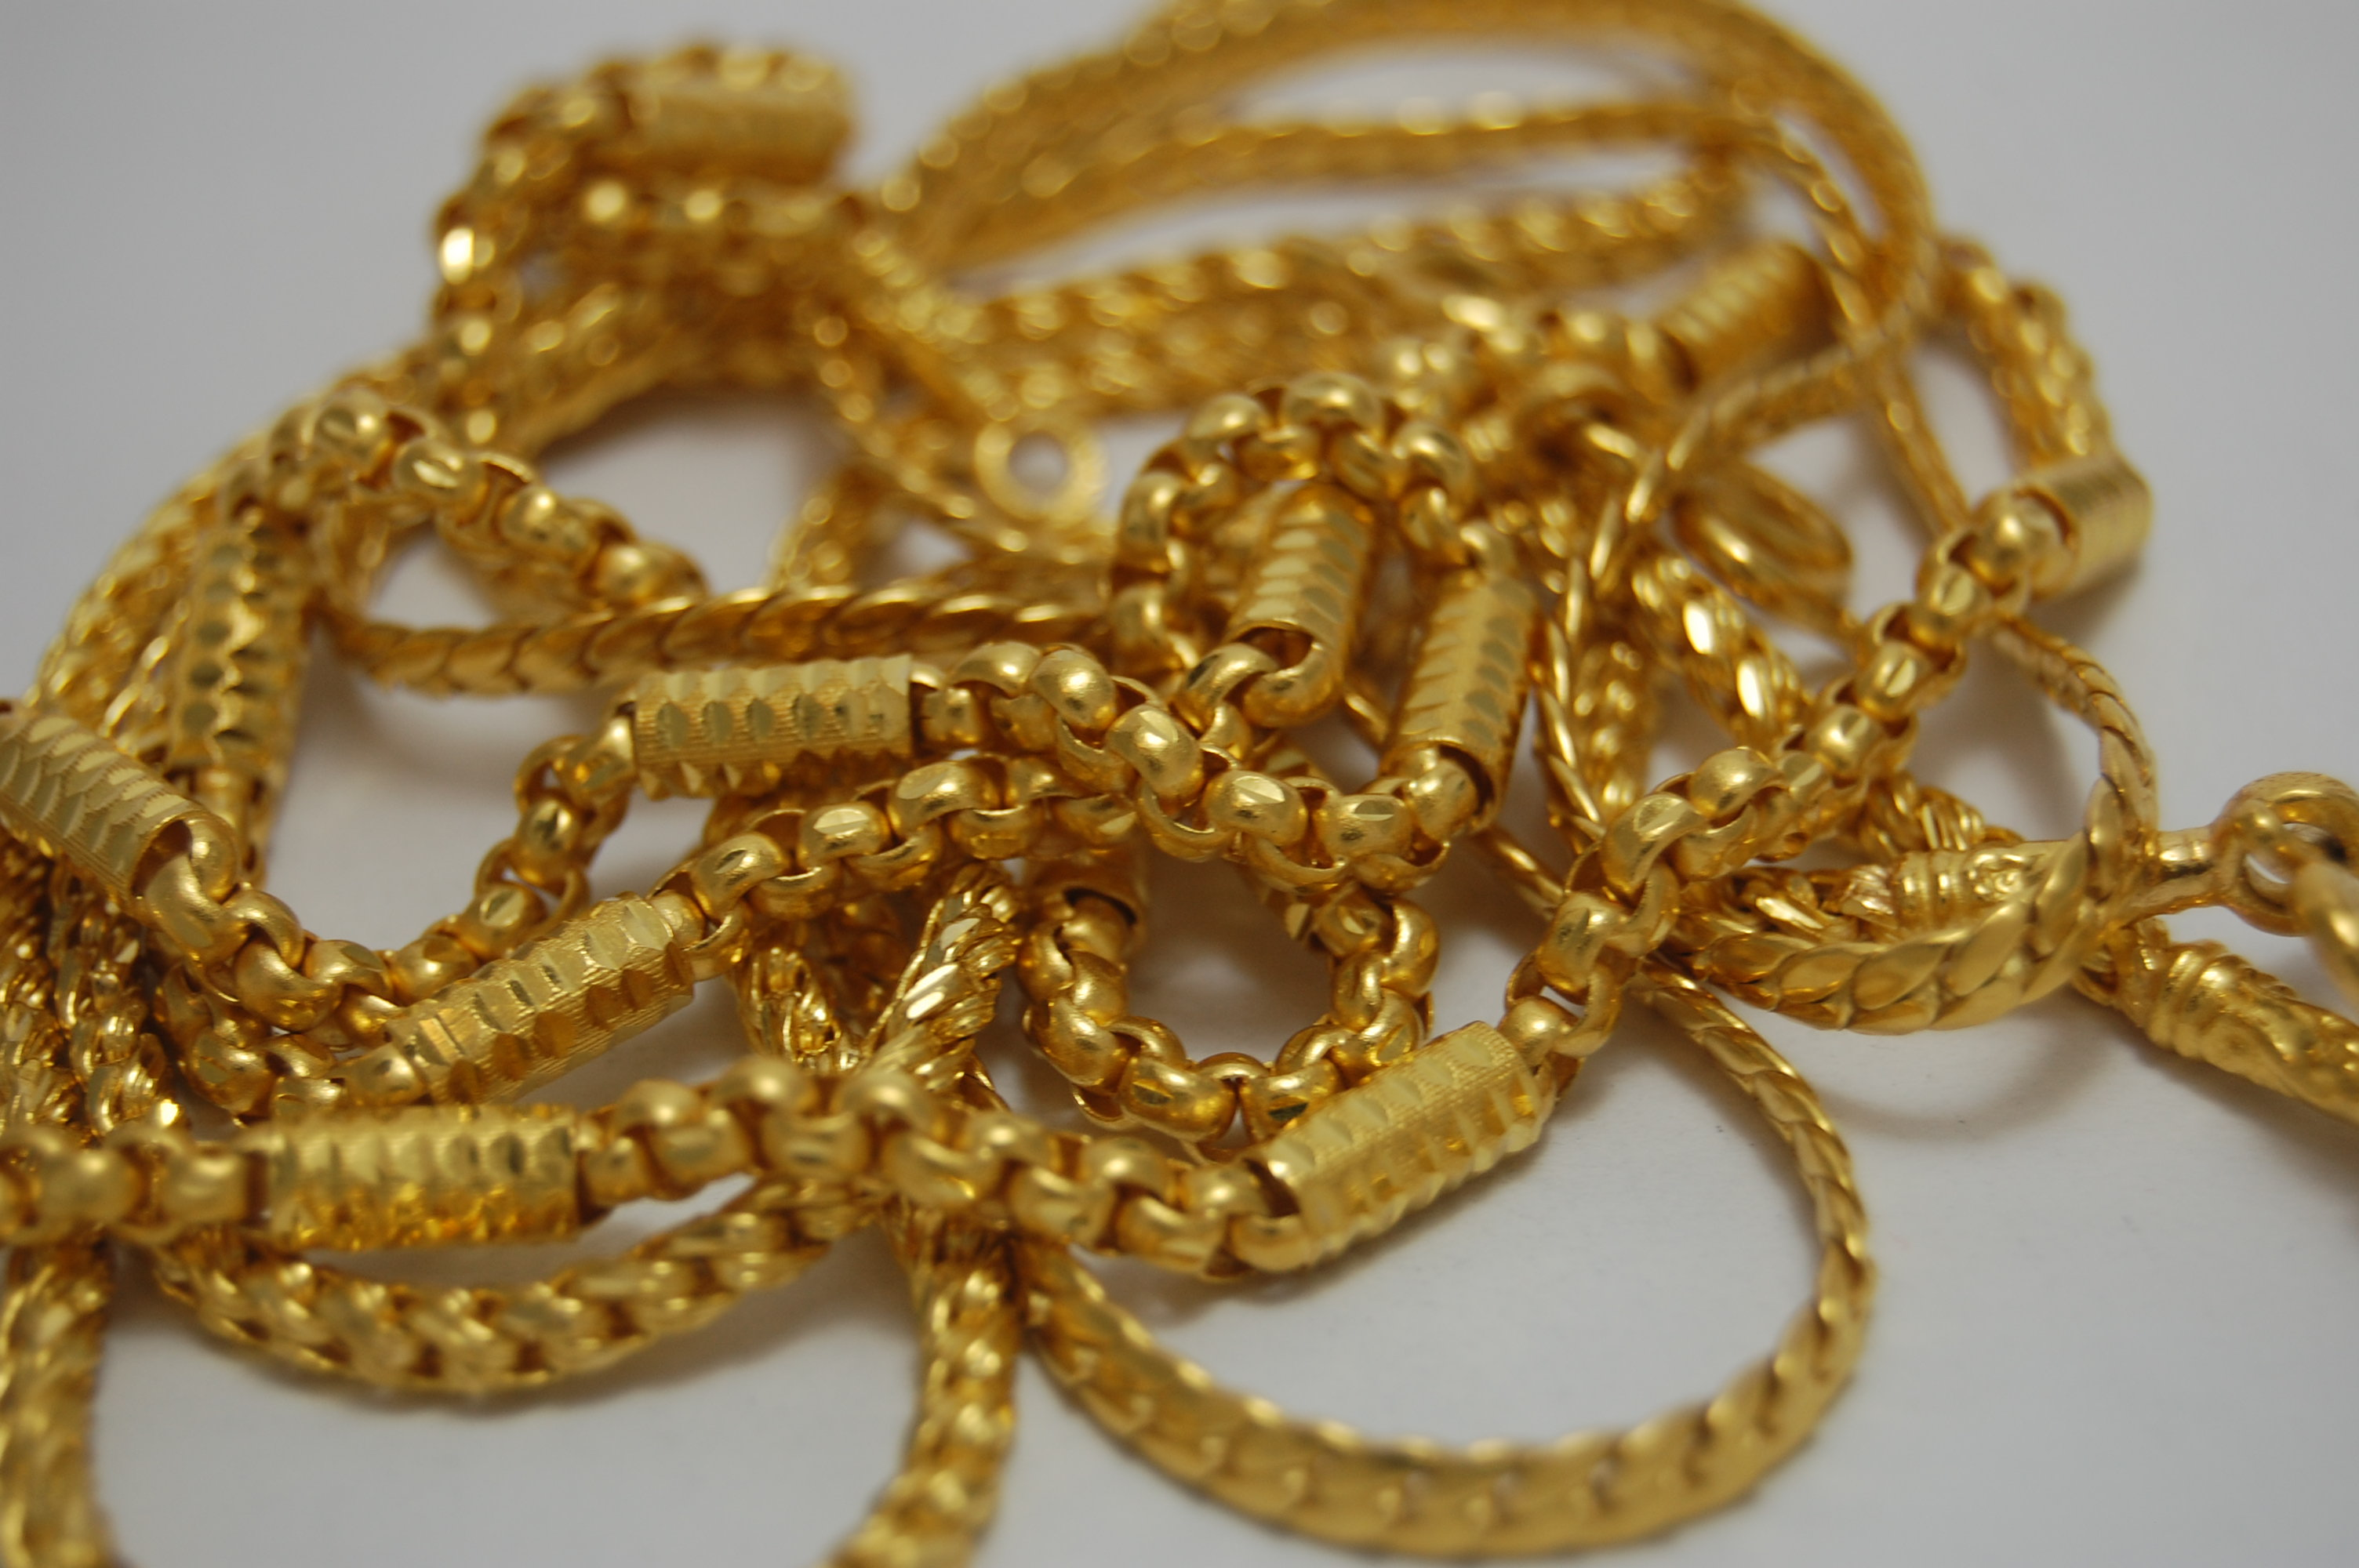 Best Gold Dealers Online Thai Baht Gold Jewellery Sell For